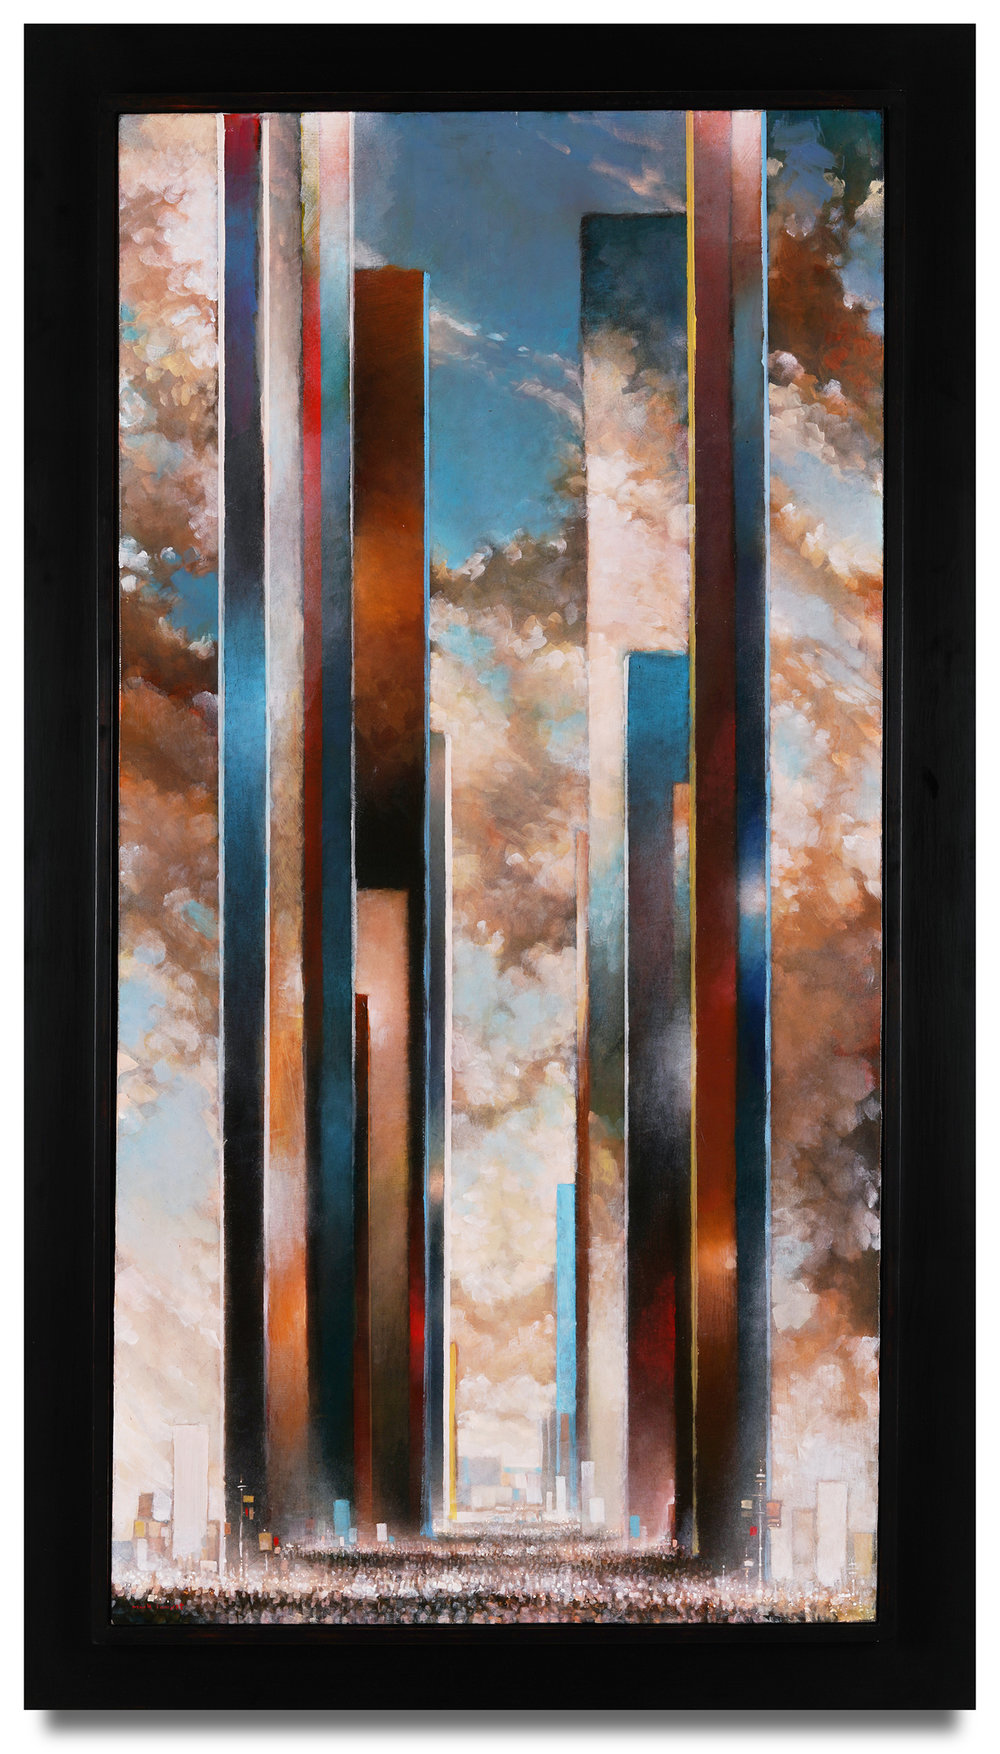 Mark Innerst,  Unrest , 2018, oil on canvas, 48 x 24 inches; framed 56 1/2 x 30 1/2 inches